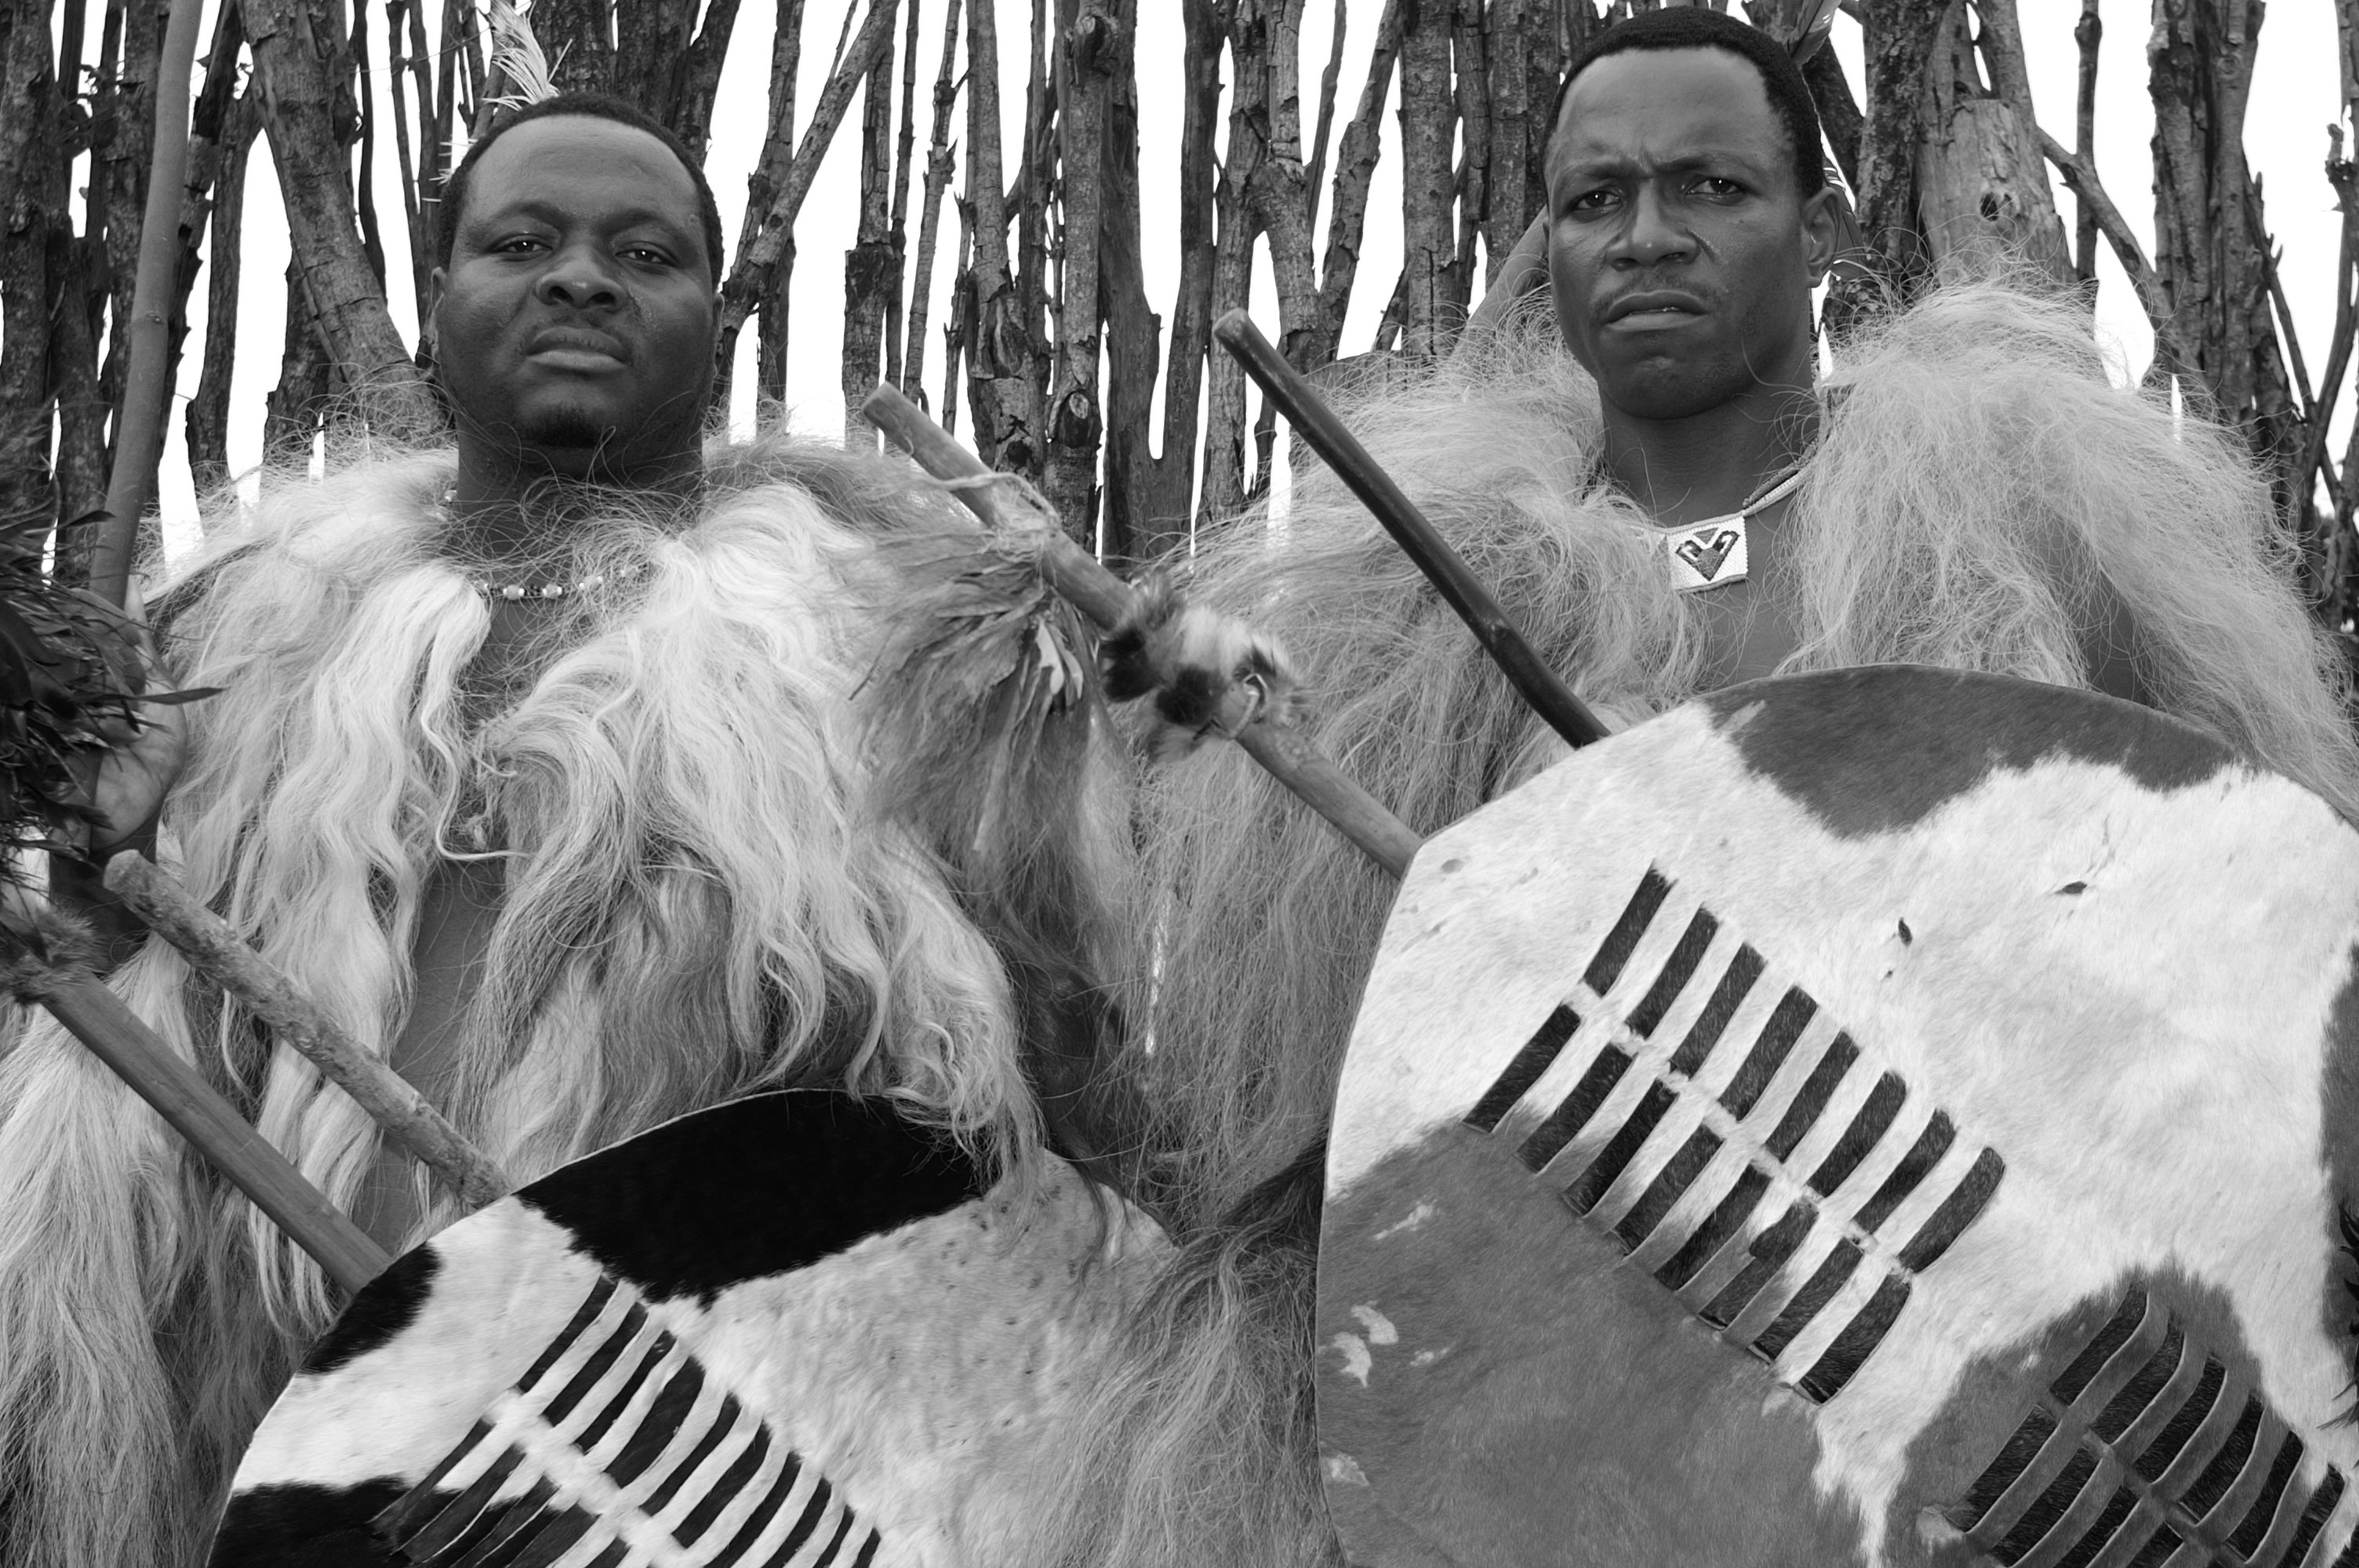 Swazi warriors of the 19th century used cannabis to increase aggression (© Wikimedia Commons)